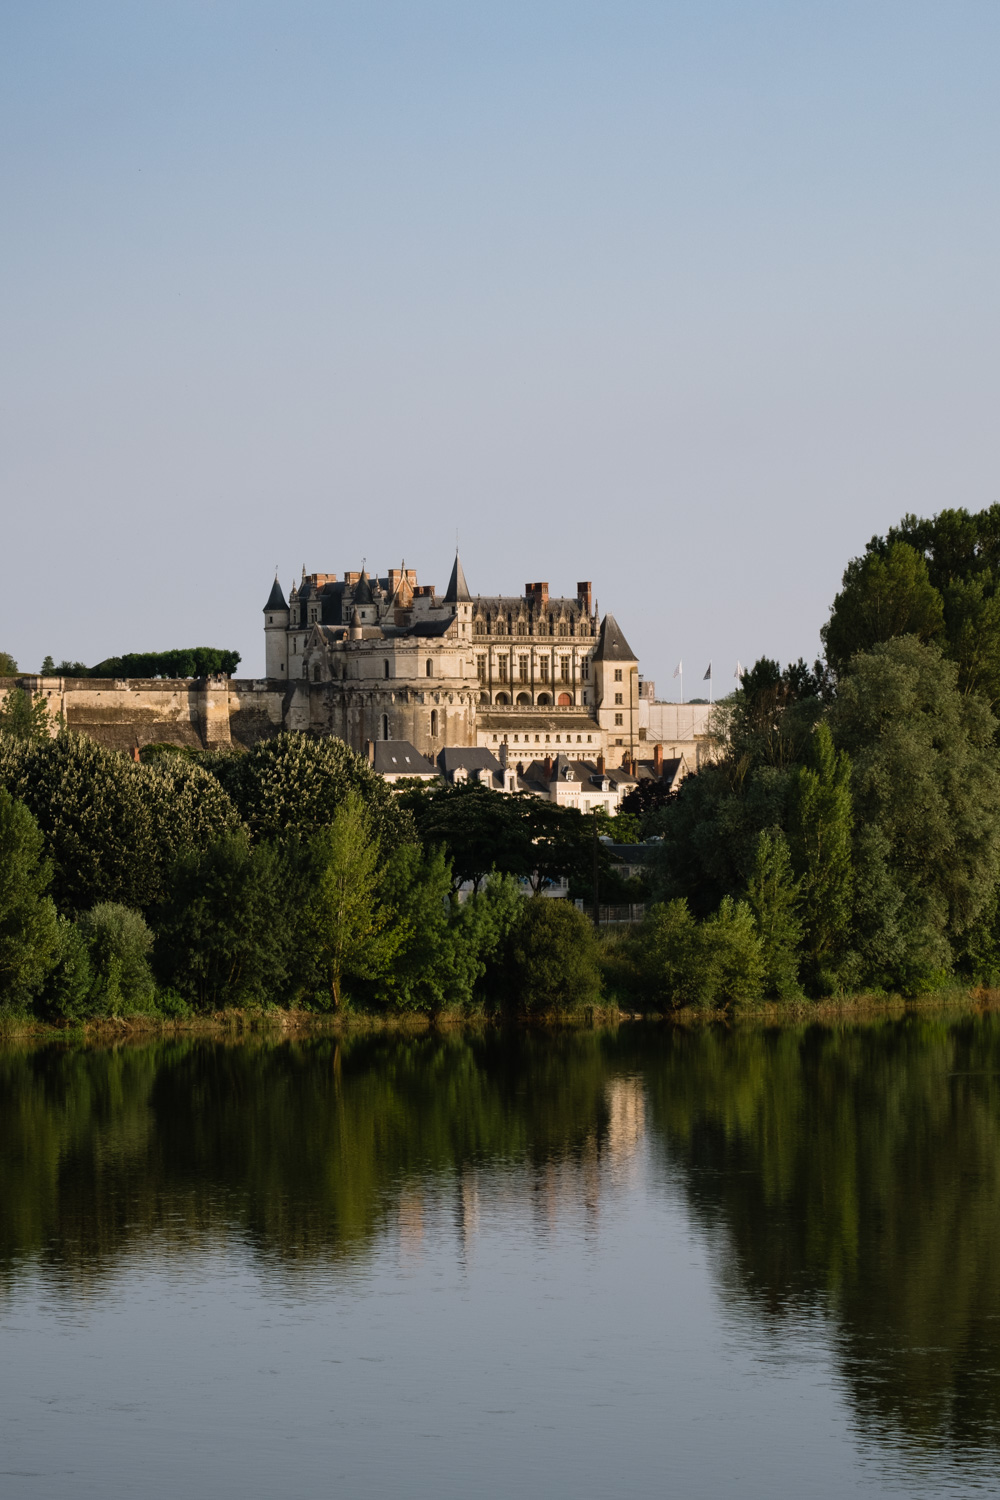 """Château d'Amboise from across the Loire River. Travel photography and guide by © Natasha Lequepeys for """"And Then I Met Yoko"""". #loirevalley #france #travelguide #photoblog #travelblog #travelphotography #landscapephotography #architecturephotography #travelitinerary #fujifilm #valdeloire #loire #chambord #chenonceau #cheverny #chaumont #chateau #castles #discoverfrance #honeymoondestination"""